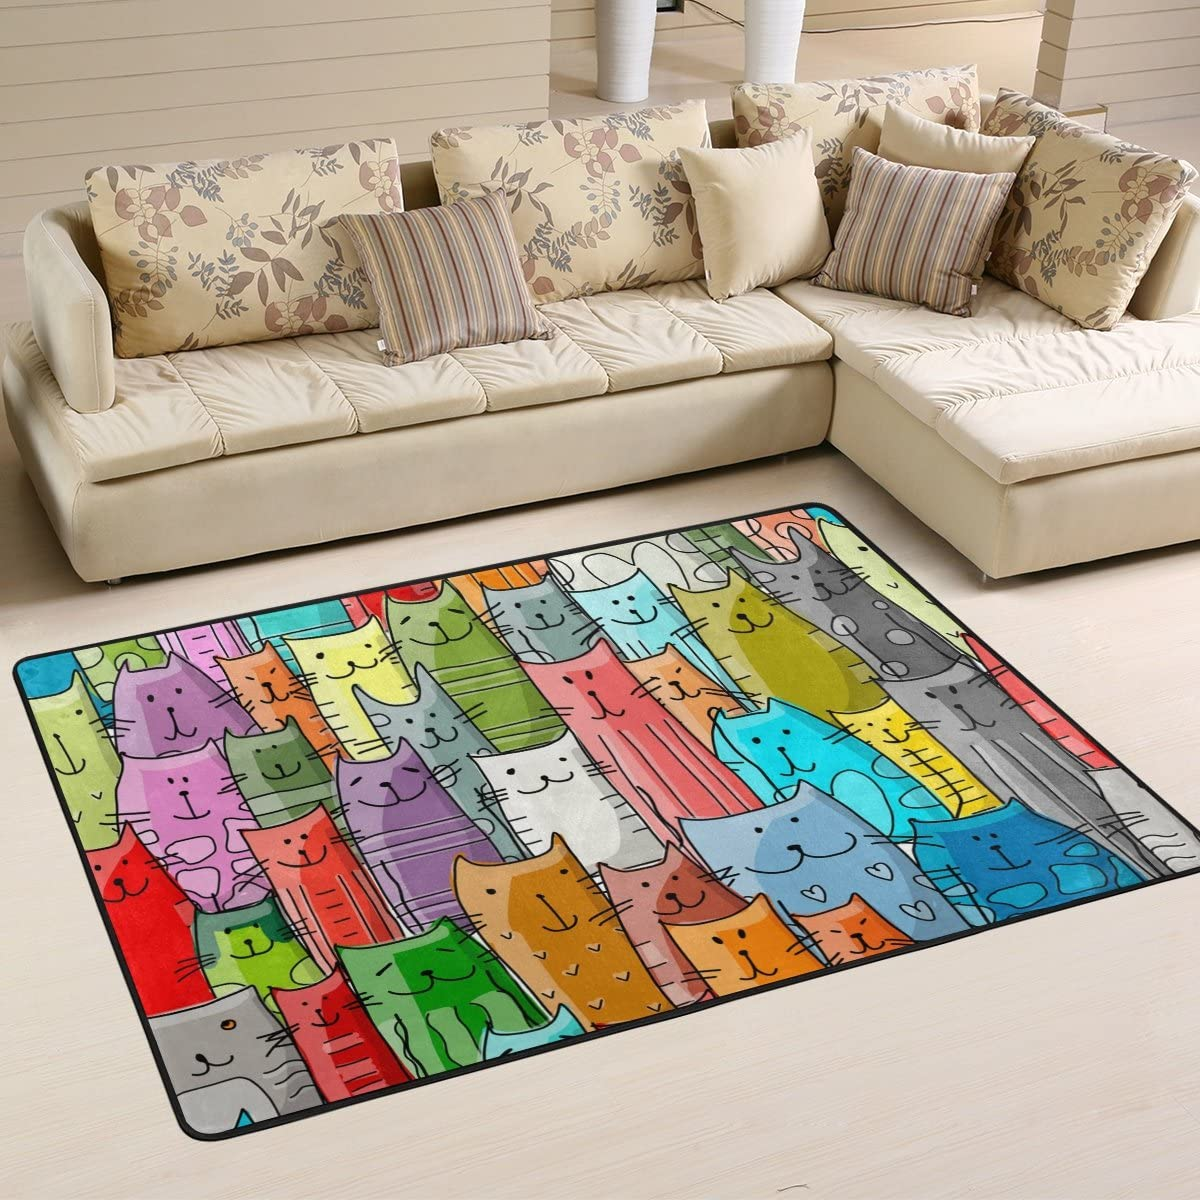 Naanle Colorful Animal Area Rug 2 x3 , Funny Cats Family Pattern Polyester Area Rug Mat for Living Dining Dorm Room Bedroom Home Decorative